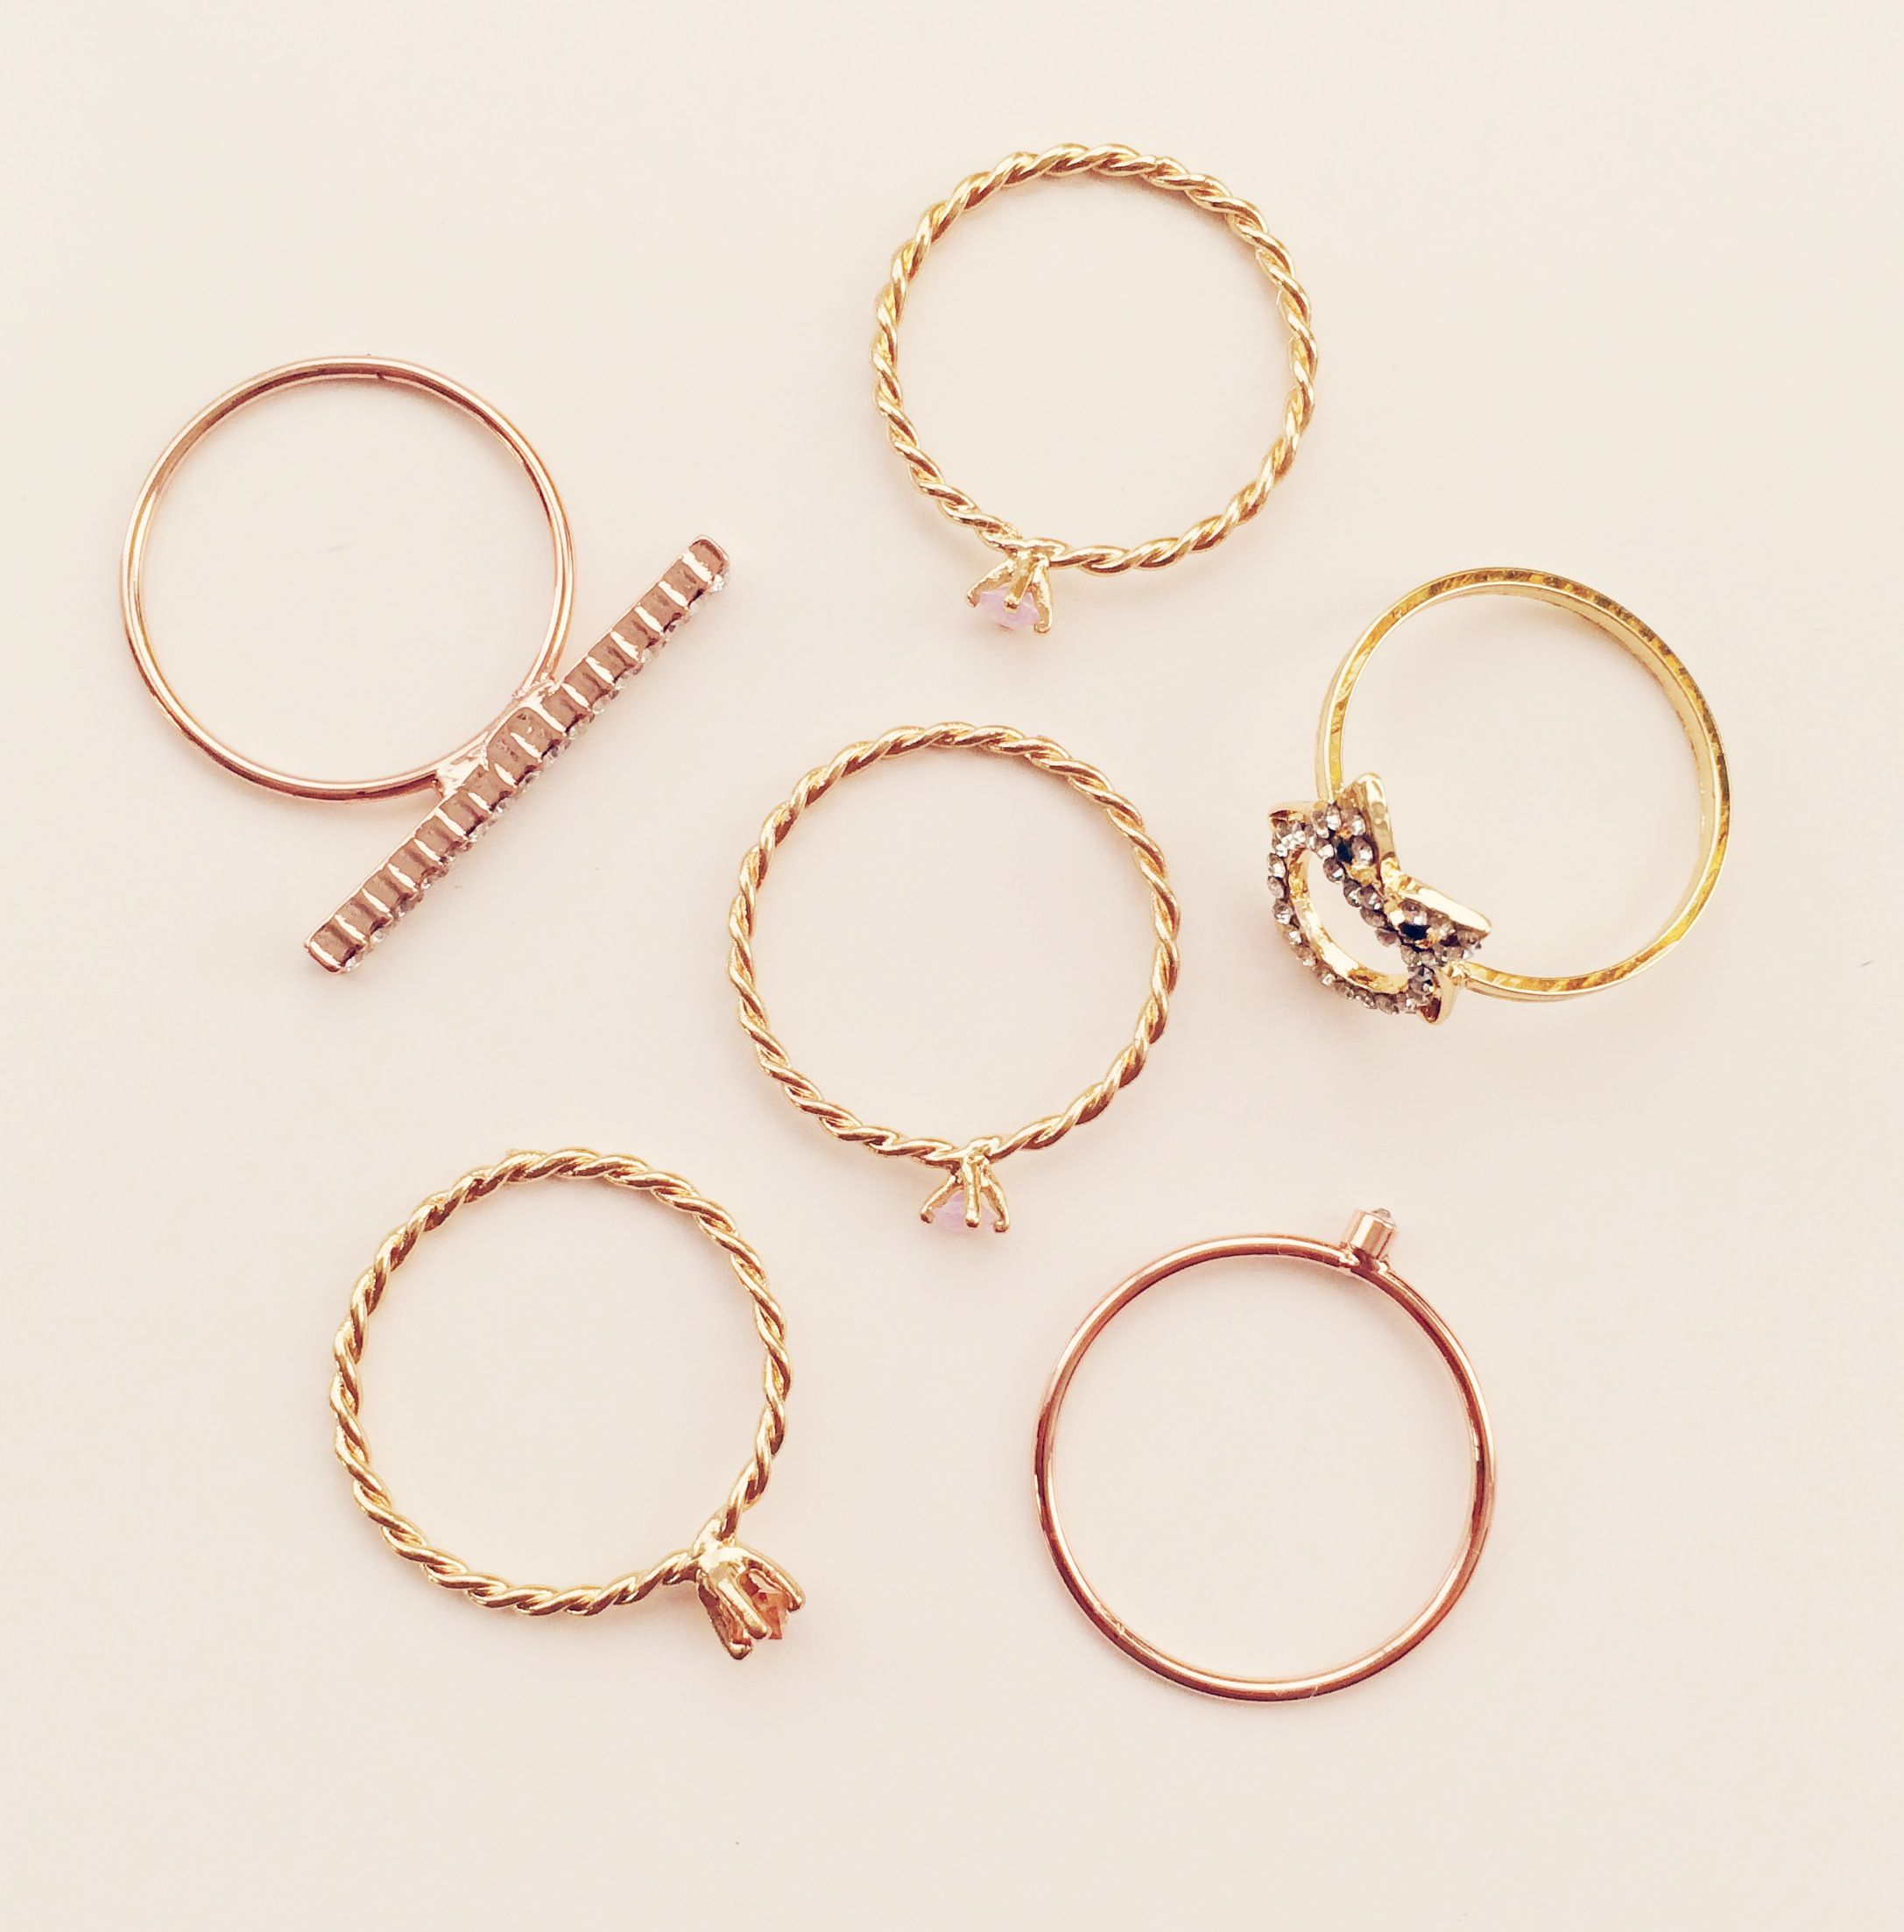 Kohls Jewelry Box Endearing Lc Lauren Conrad For Kohl's Stackable Rings $780  My Style And Design Inspiration